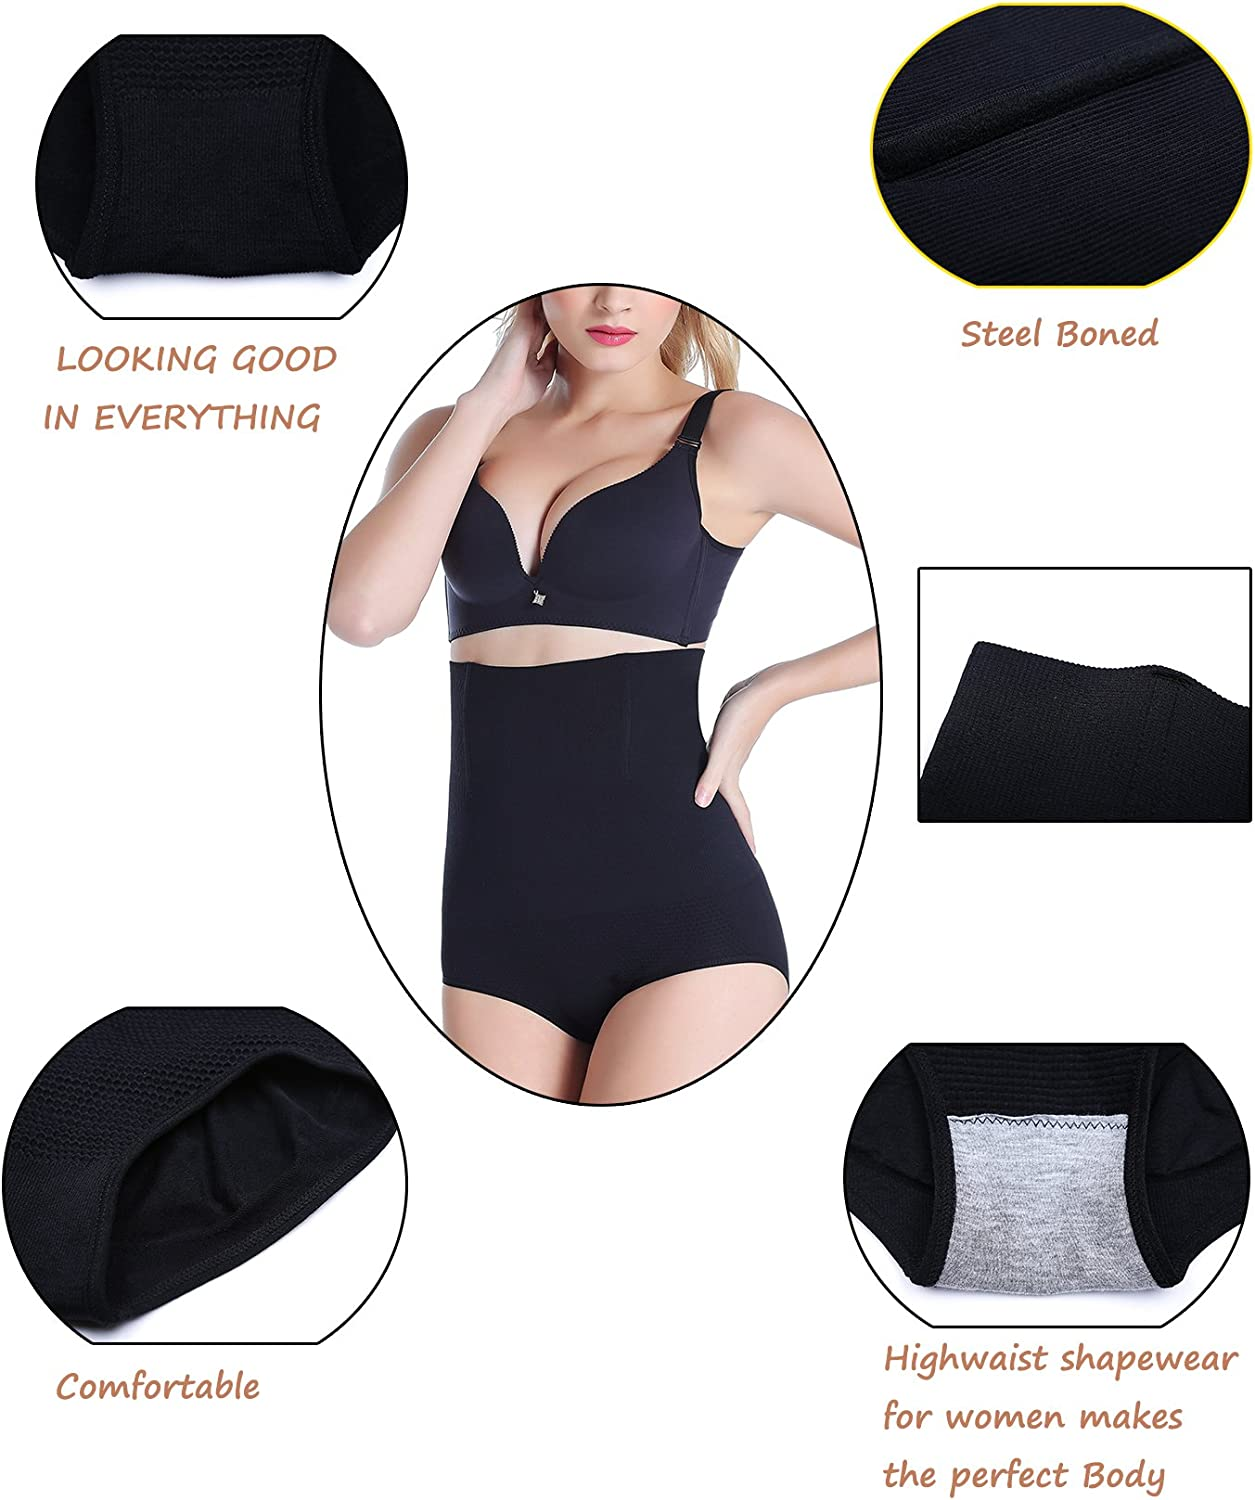 Women Waist Trainer Tummy Control Panties Body Shaper High Waisted Shapewear Briefs Butt Lifter Slimming Corset Seamless